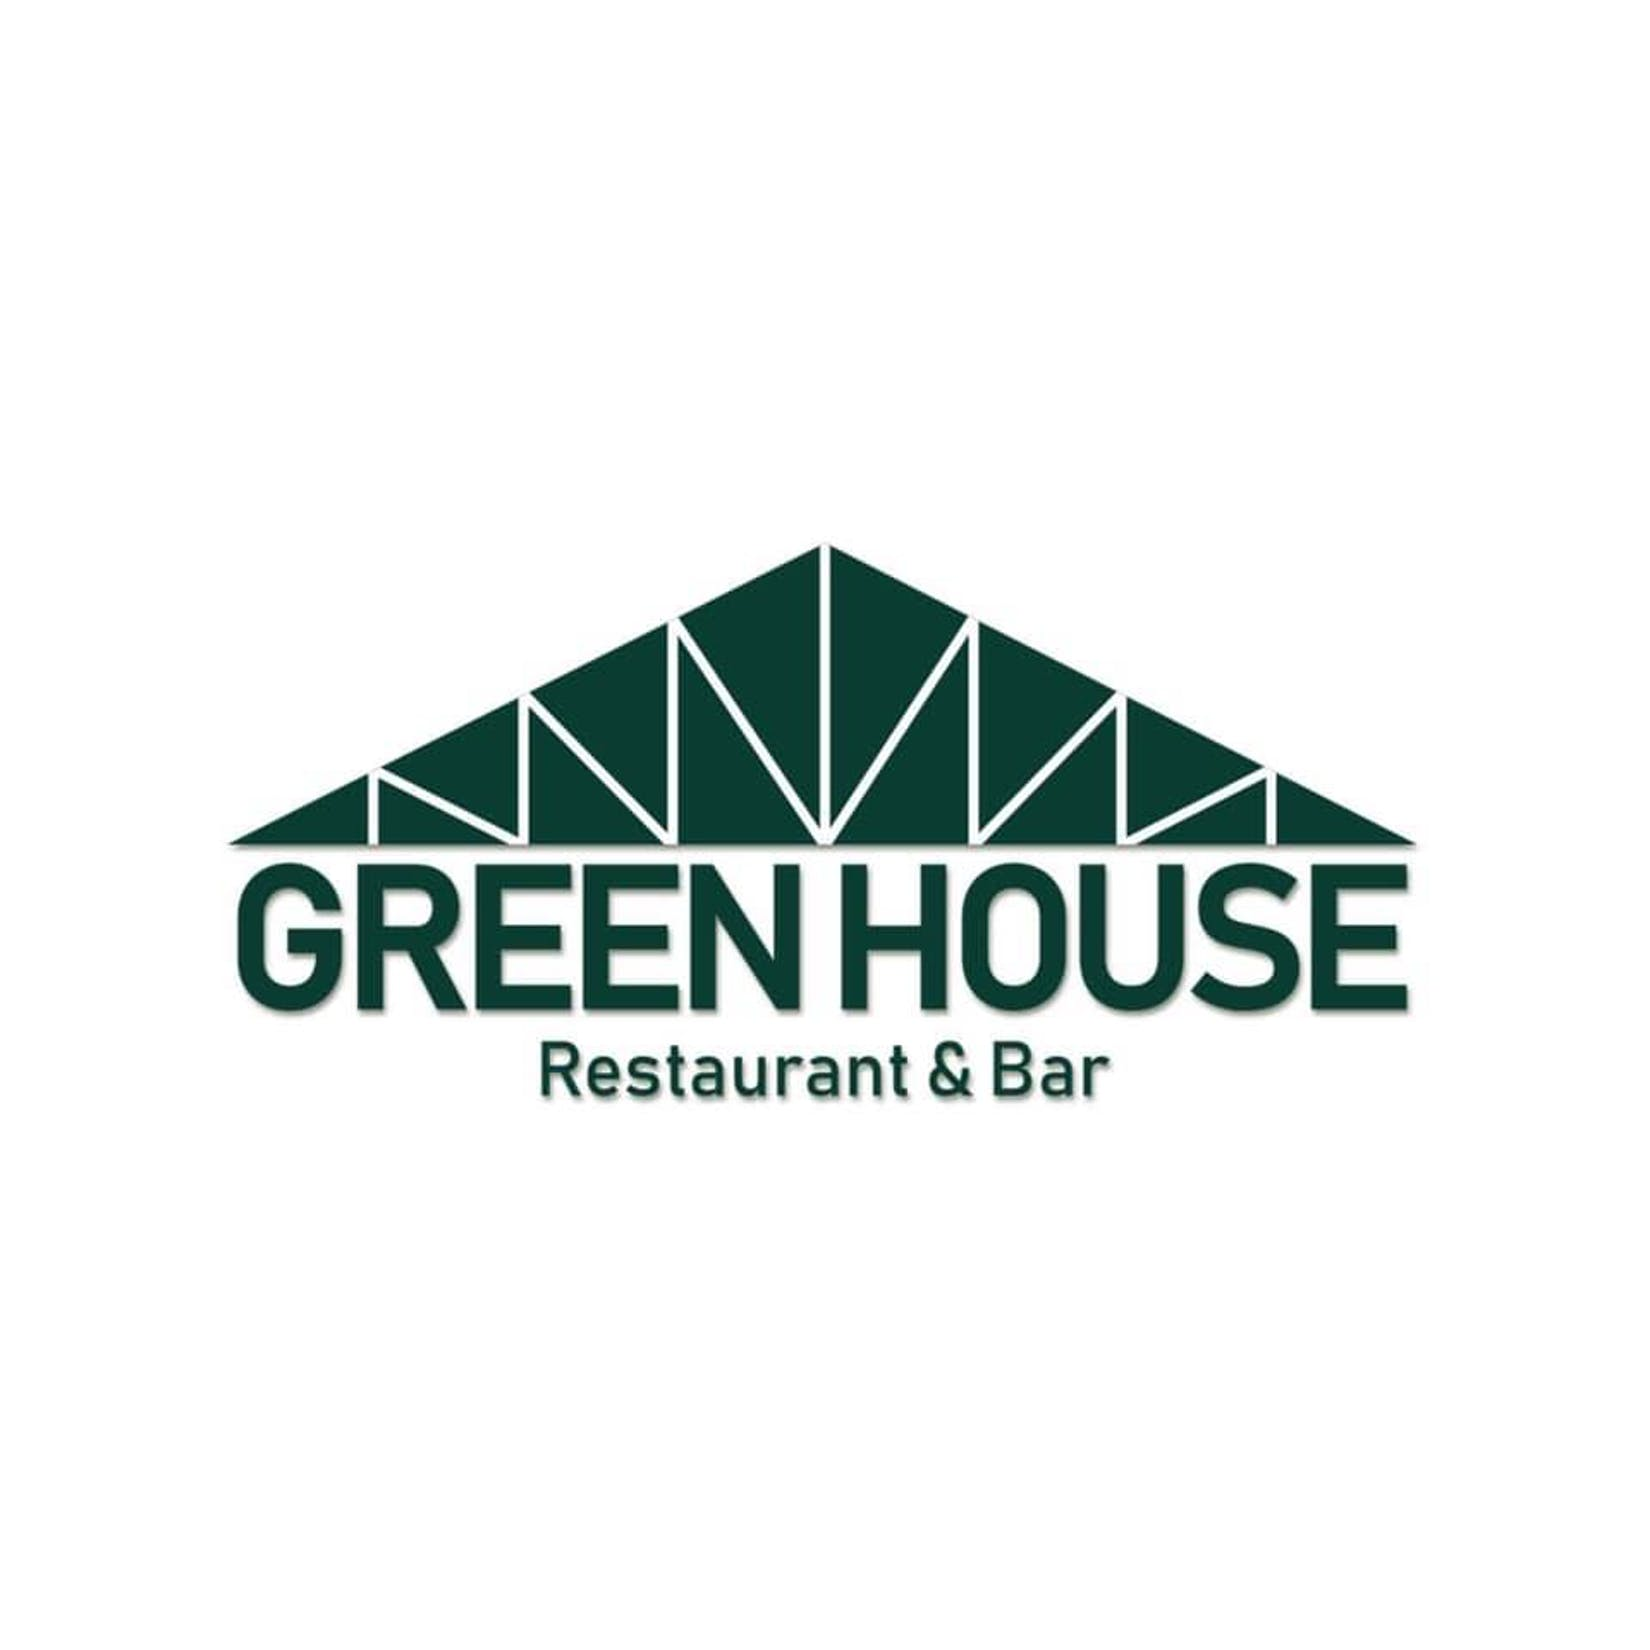 GREEN HOUSE Restaurant,Bar & B.B.Q | yathar